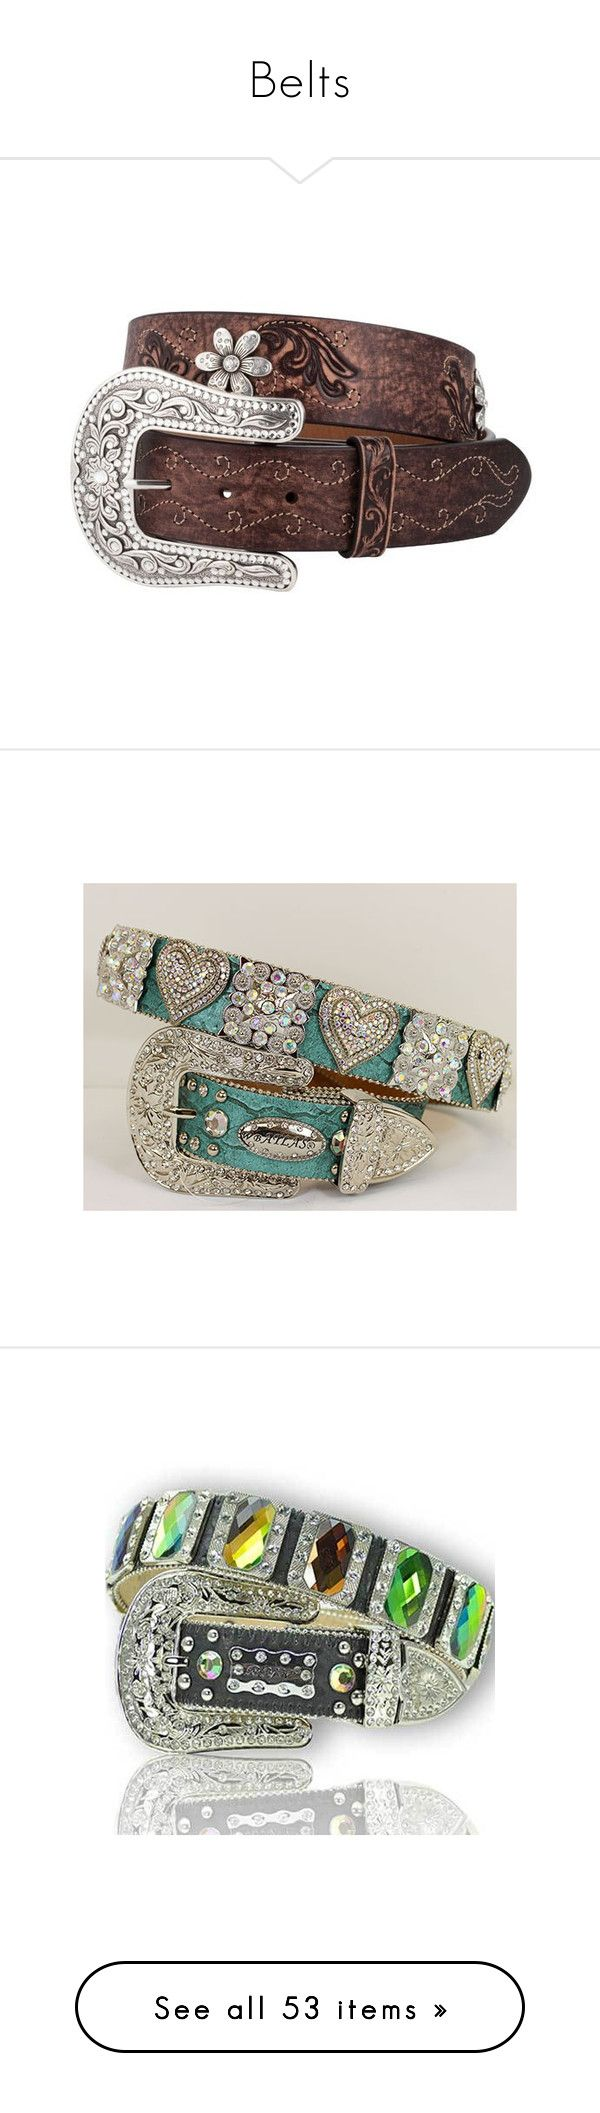 """""""Belts"""" by barrel-aesthetic ❤ liked on Polyvore featuring accessories, belts, country, buckle belt, distressed belt, rhinestone belts, rhinestone studded belt, cowgirl belts, western belts and cowboy belt"""